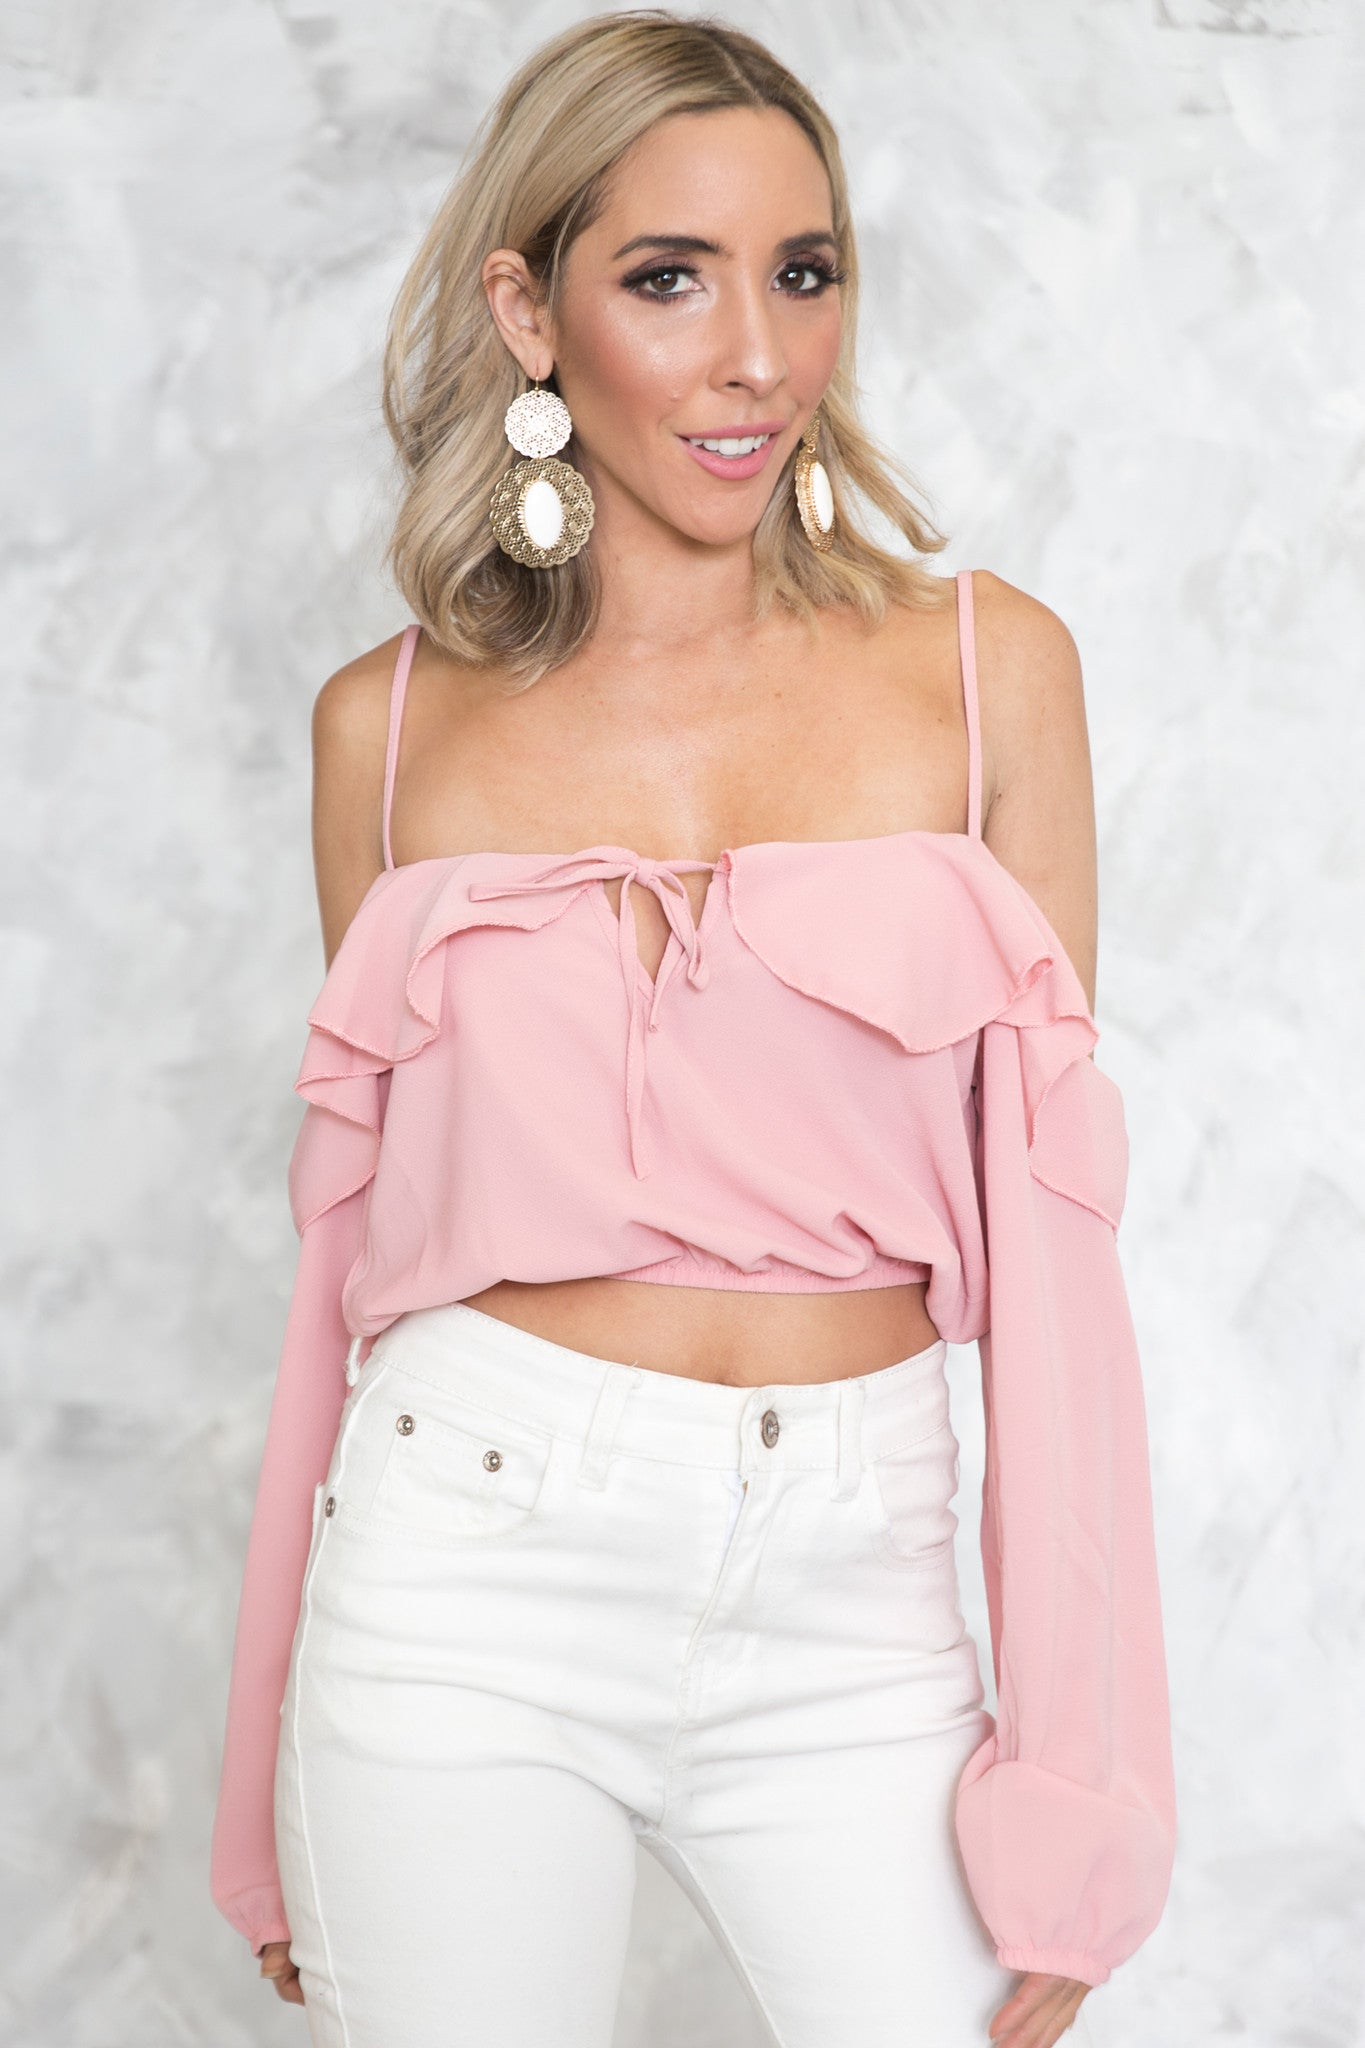 a22bd155785c1 Off-Shoulder Ruffle Crop Top - Coral     Only 1-M Left